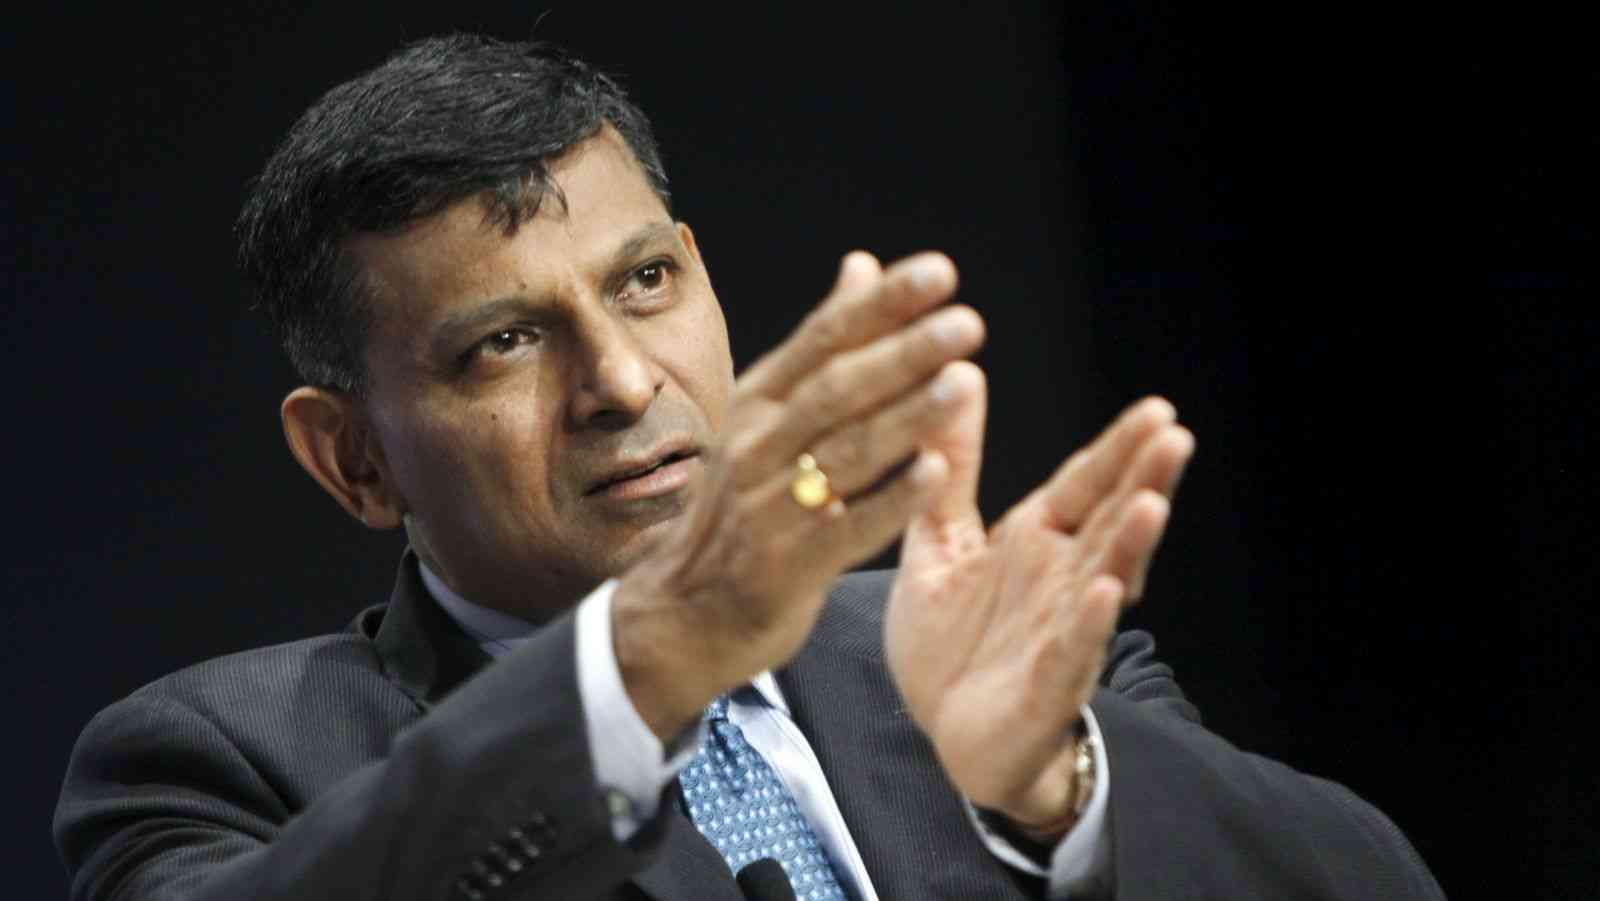 Why Raghuram Rajan Deserves A Second Term?